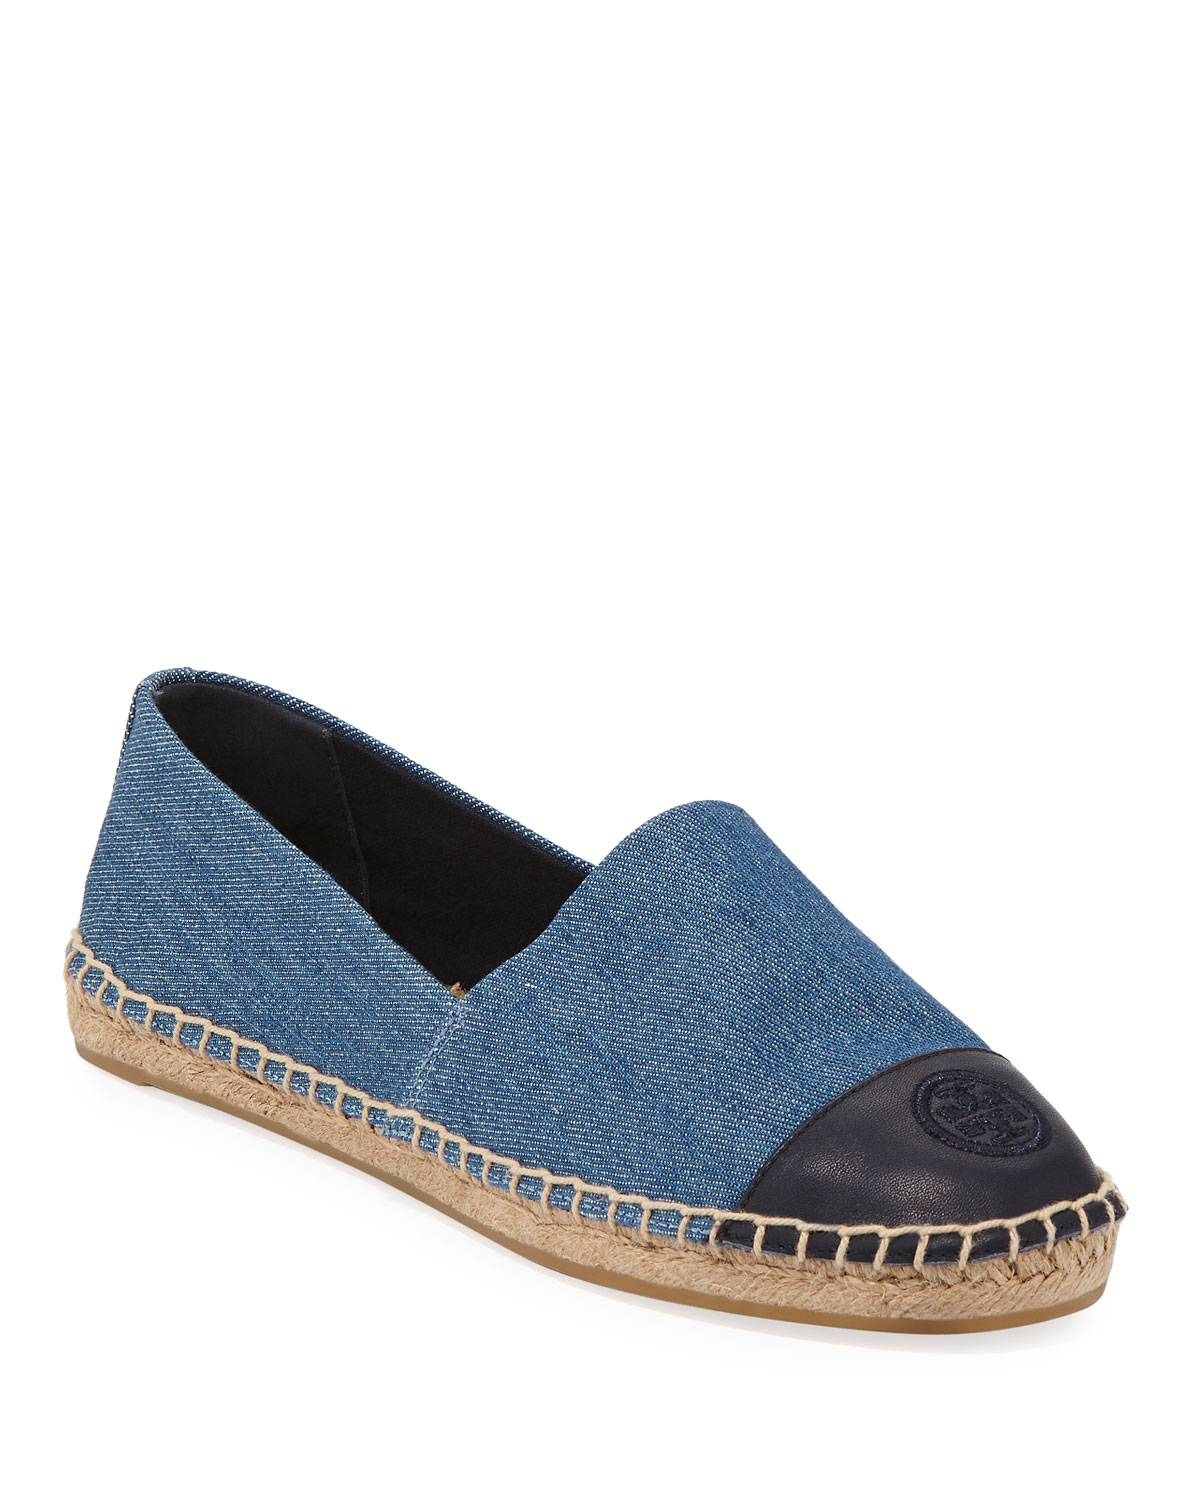 86a0b9dd552 Tory Burch Colorblock Denim Flat Espadrille